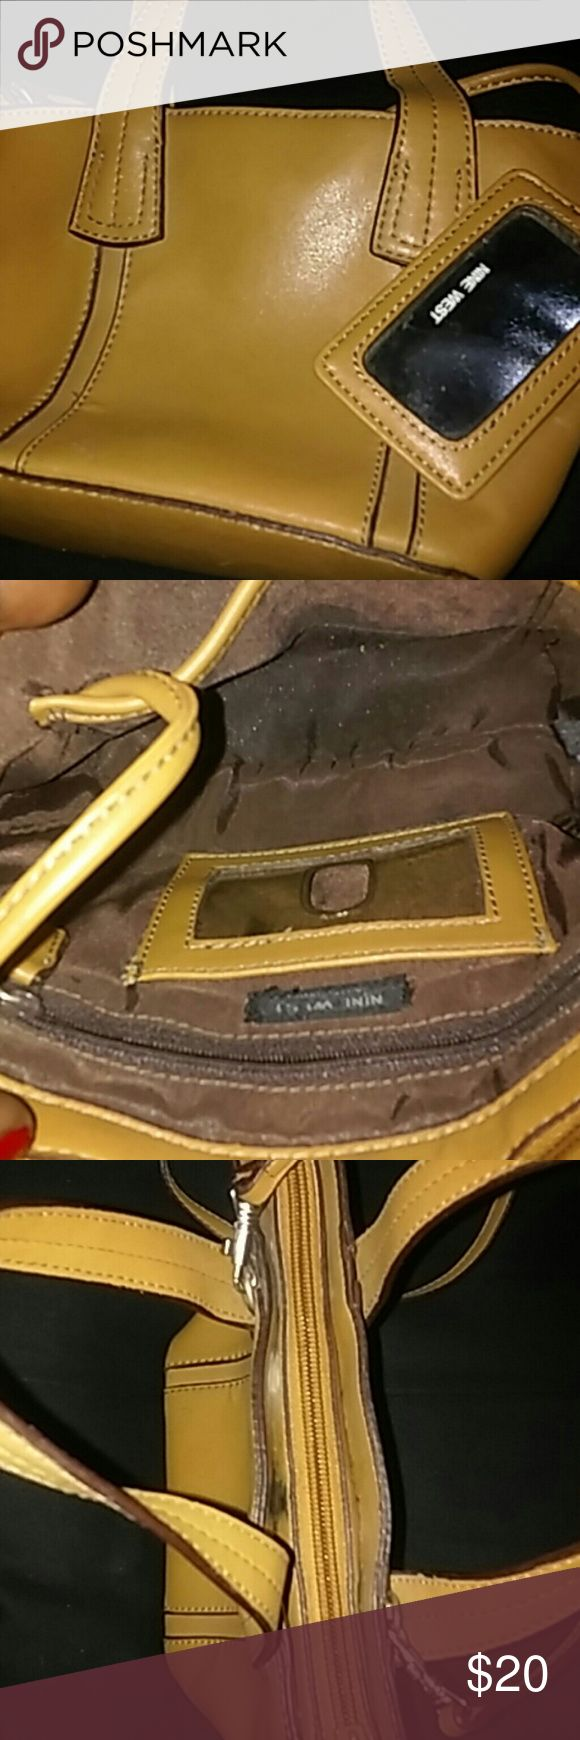 Nine West mini bag with removable long strap Tan leather mini bag with attached mirror inside...onr inside zipper pocket and slot for i.d...small mark see last pic..unnoticeable until you pull apart strap area Nine West Bags Mini Bags